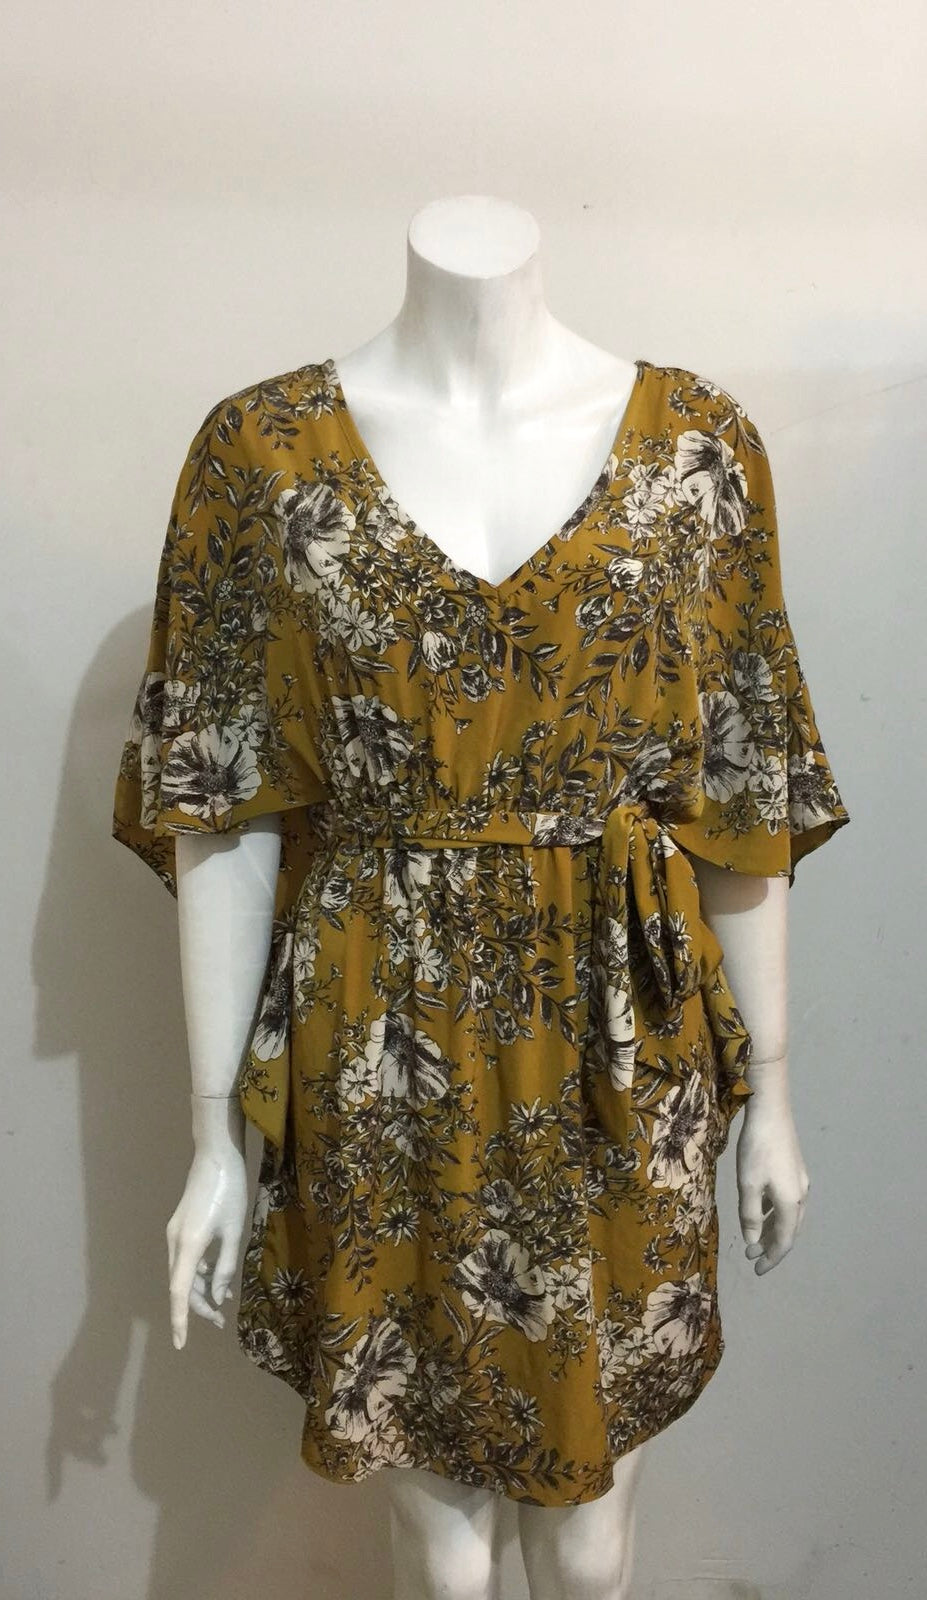 Kaida Green Floral Print Batwing Dress Size M